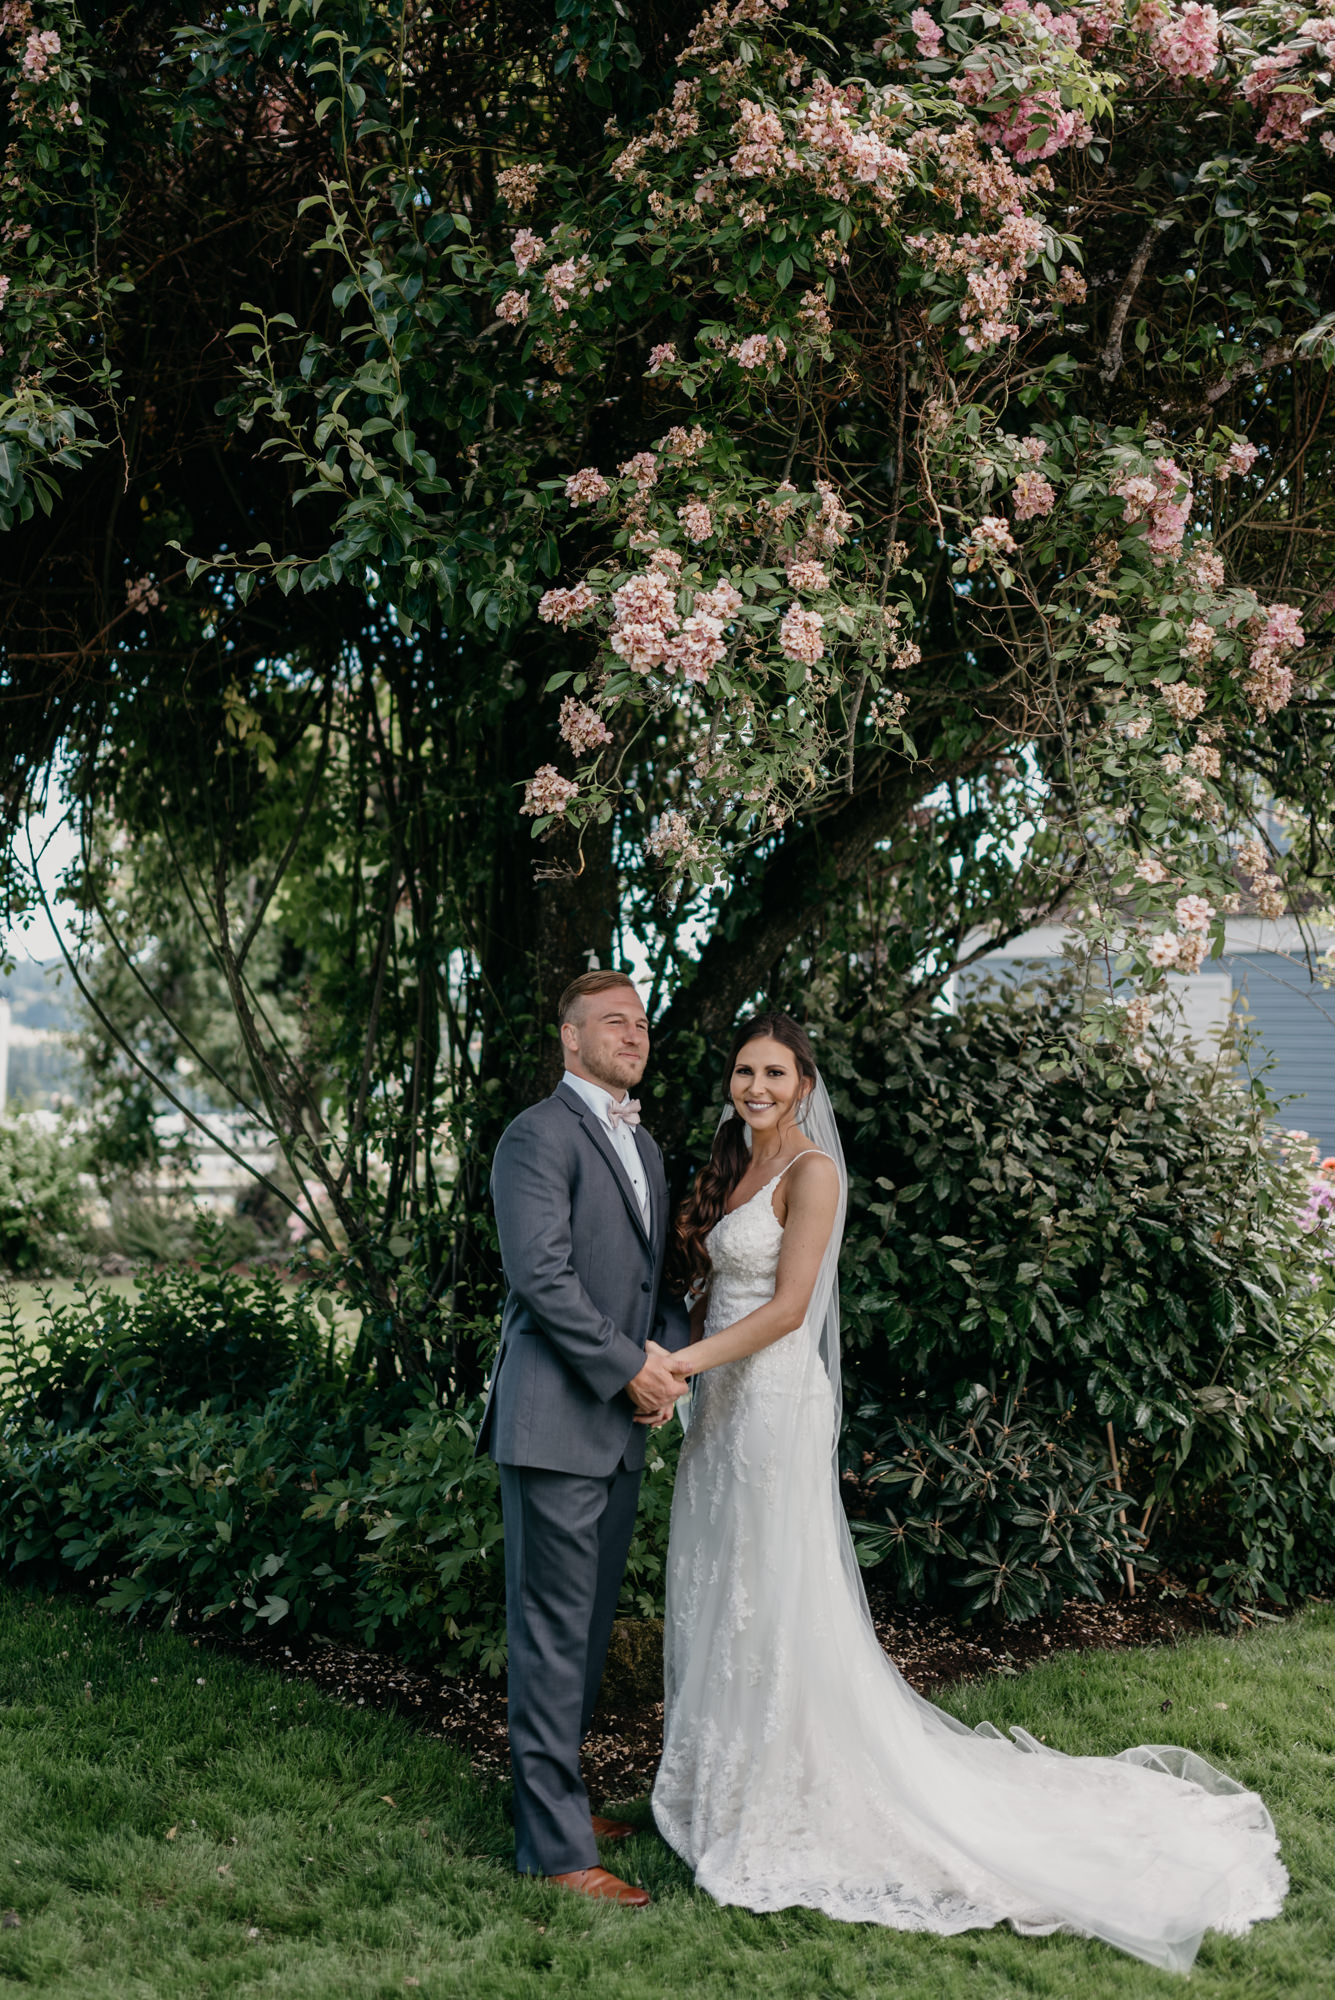 74-lake-oswego-wedding-portland-couple-rose-tree.jpg